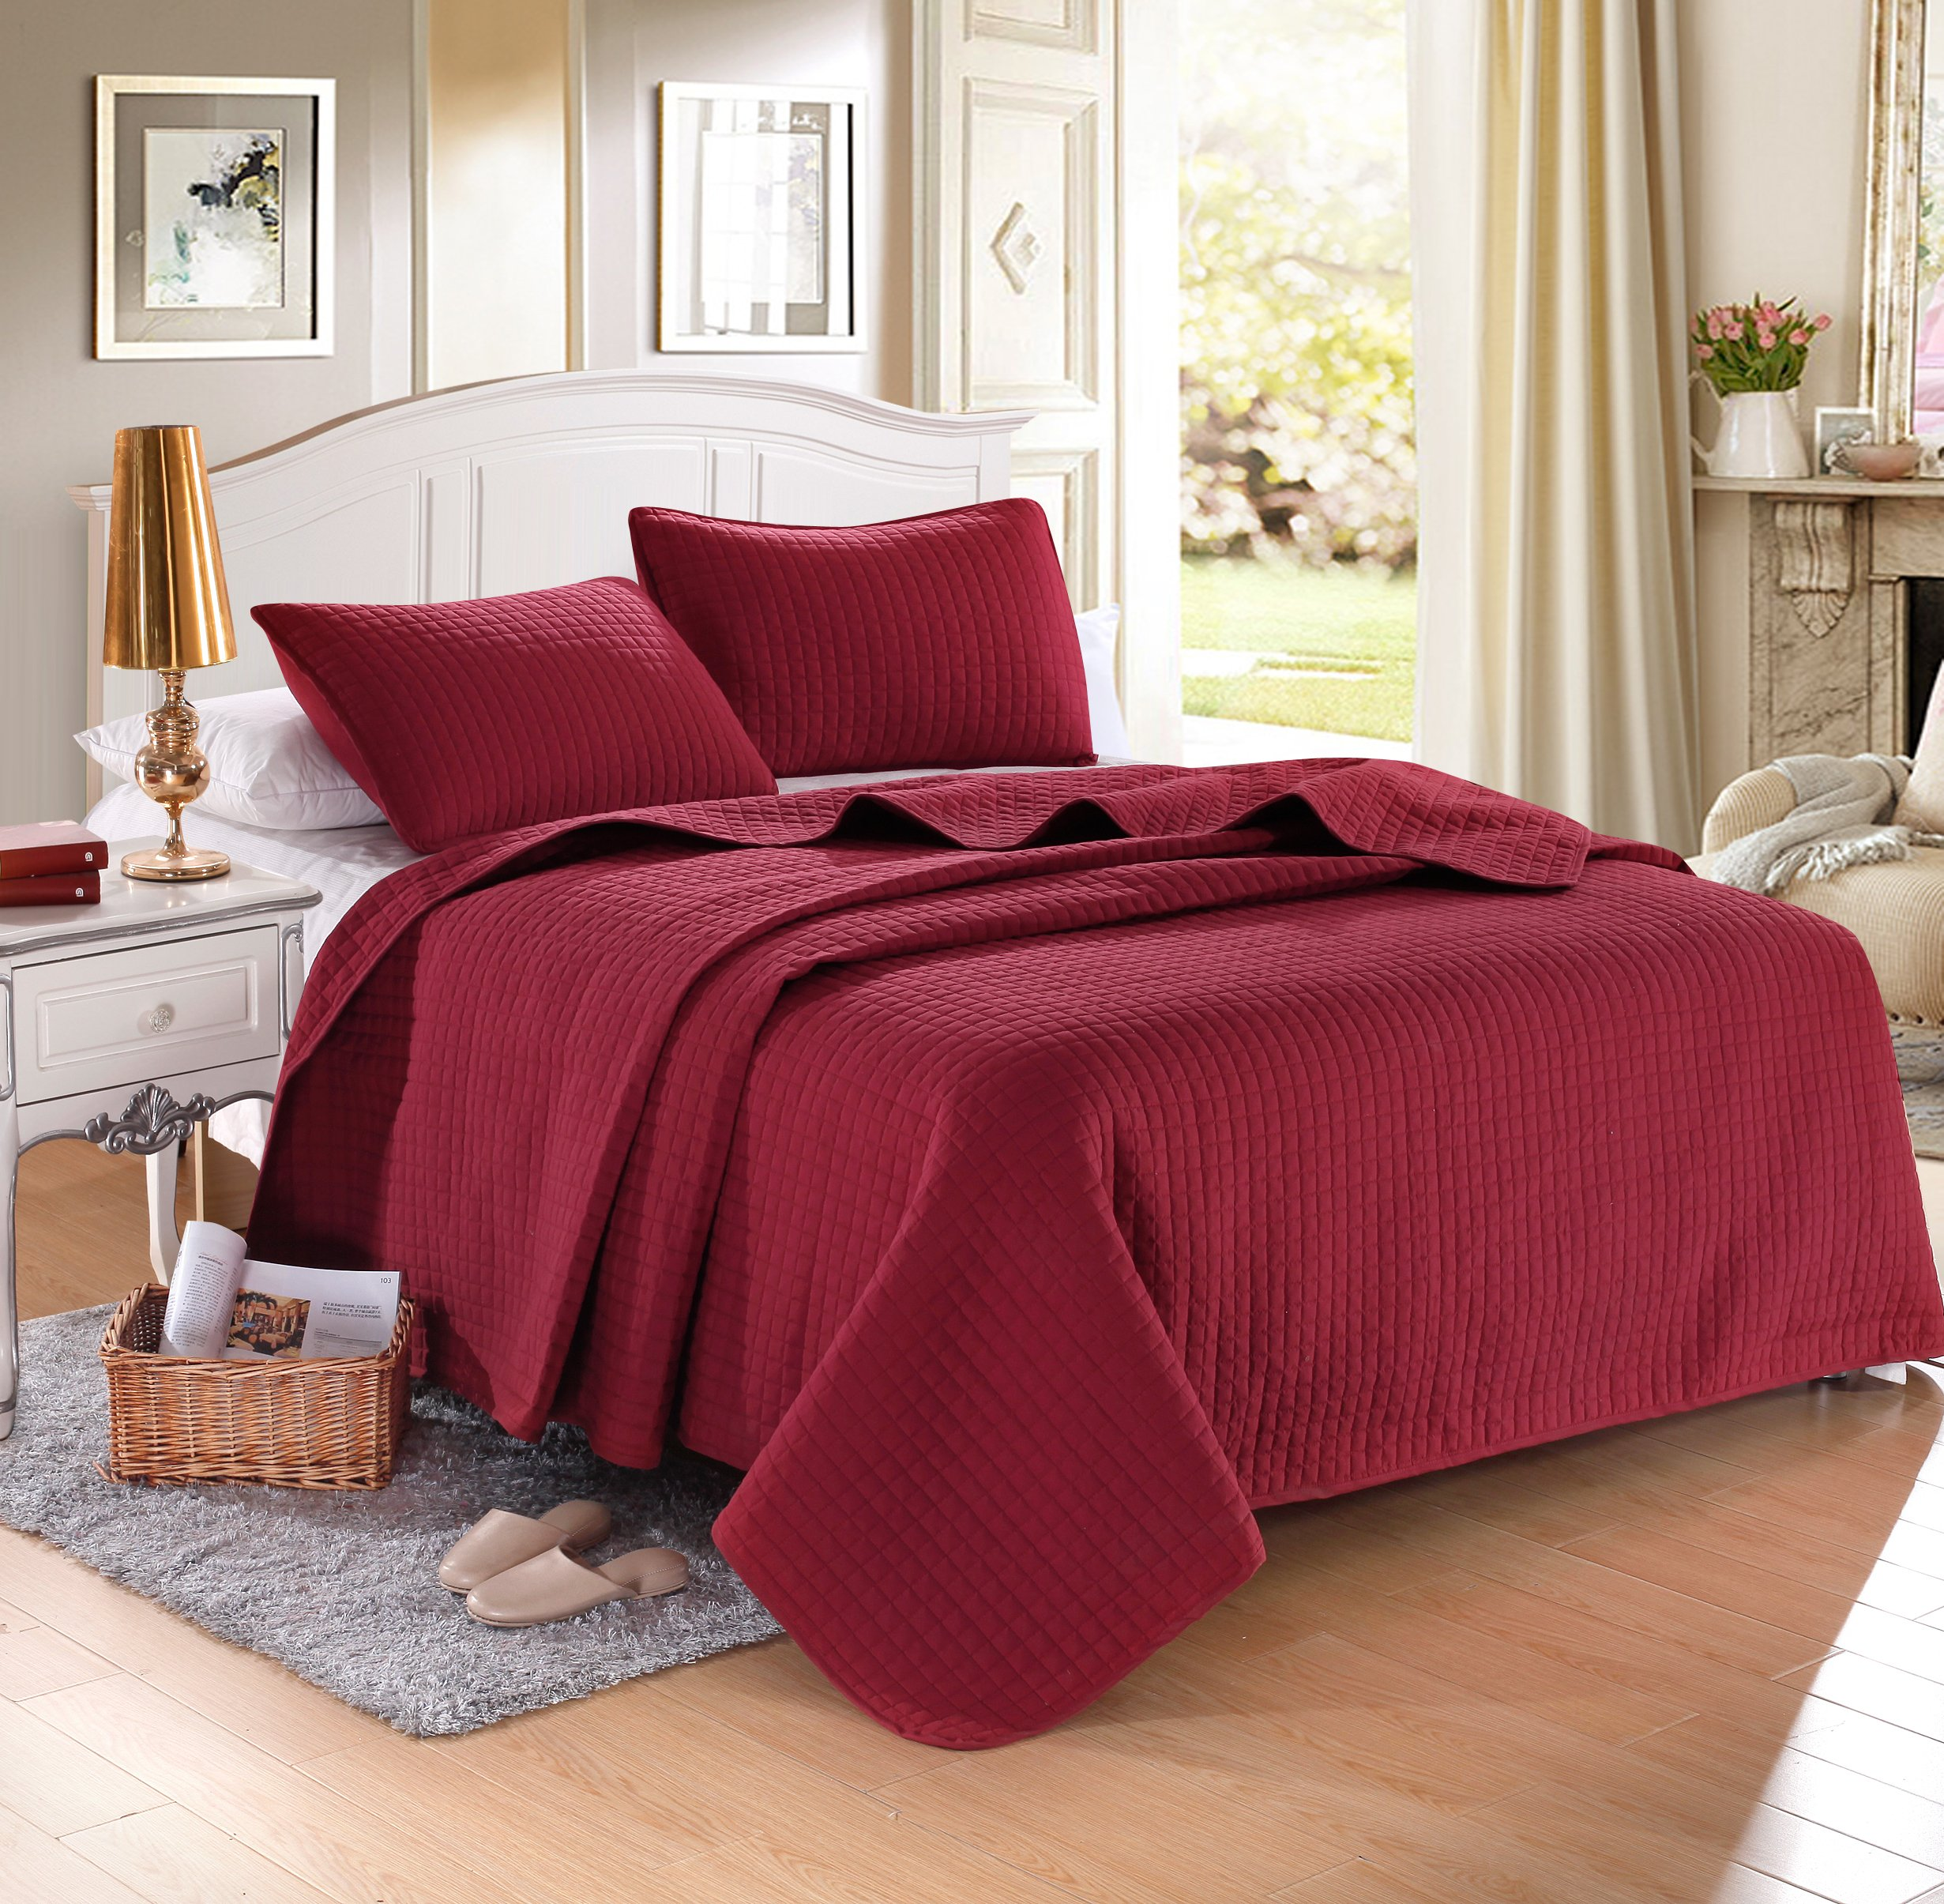 """TWIN BURGUNDY Solid color Quilted Bedspread Coverlet(68""""x86"""") +2 shams (20""""x26"""")Hypoallergenic Overfilled Bedcover for homes,hotels/motels, Airbnb, rentals polyester filling 120gsmWeight4lbs"""